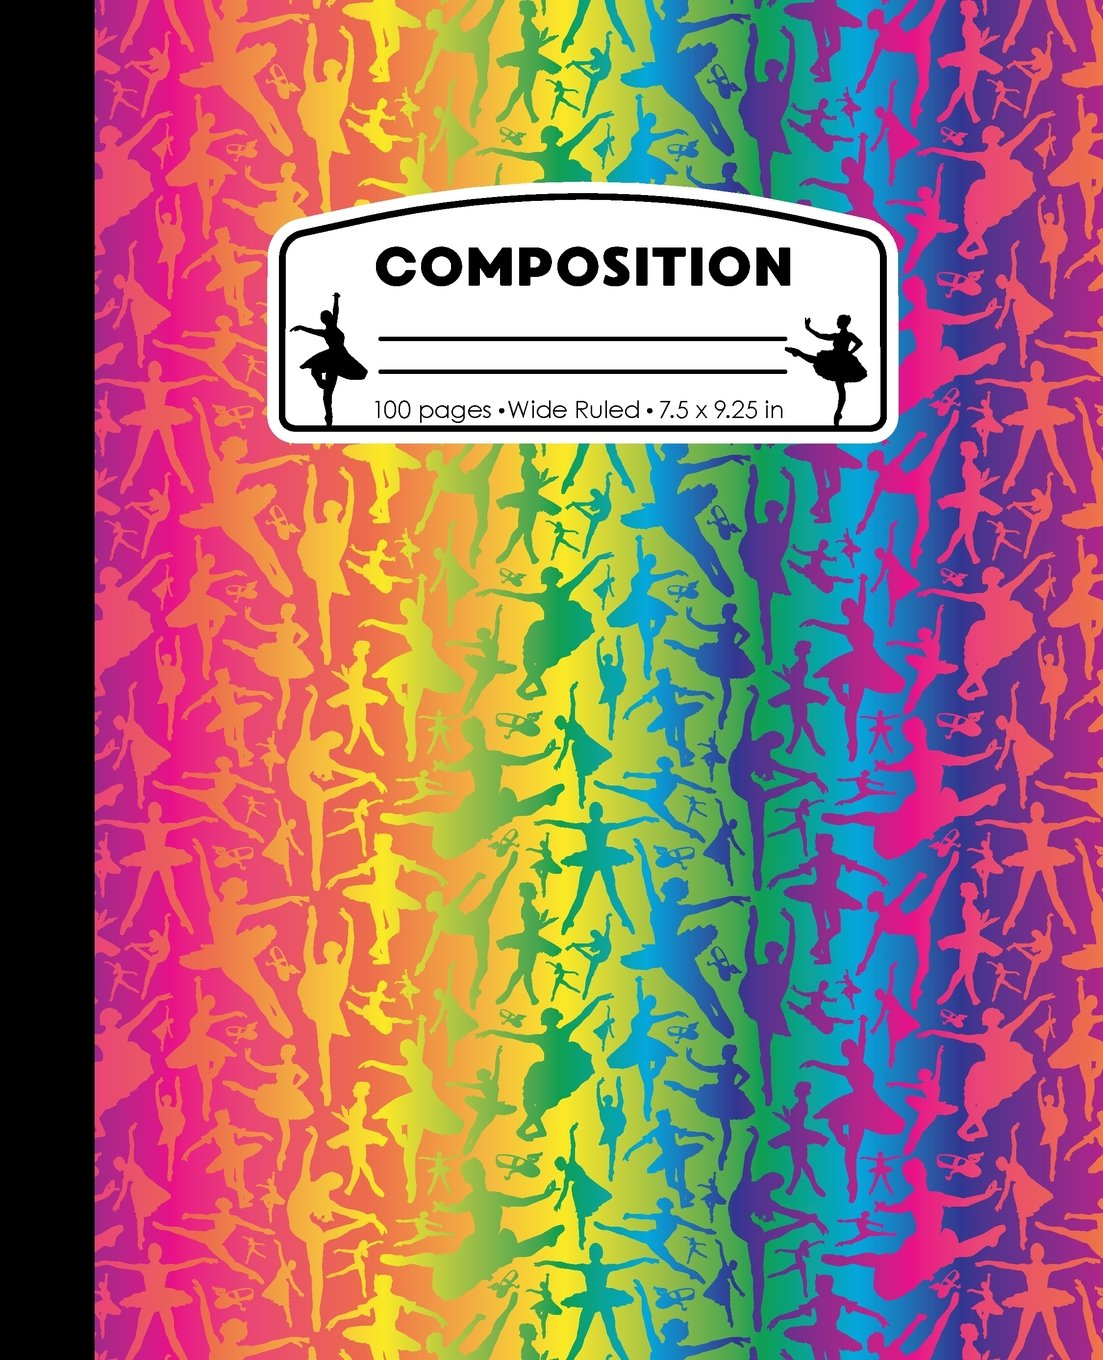 Download Composition: Ballet Neon Rainbow Marble Composition Notebook. Wide Ruled 7.5 x 9.25 in, 100 pages Ballerina Dancer book for girls, kids, school, ... (Ballet Dance Marble Composition Books) pdf